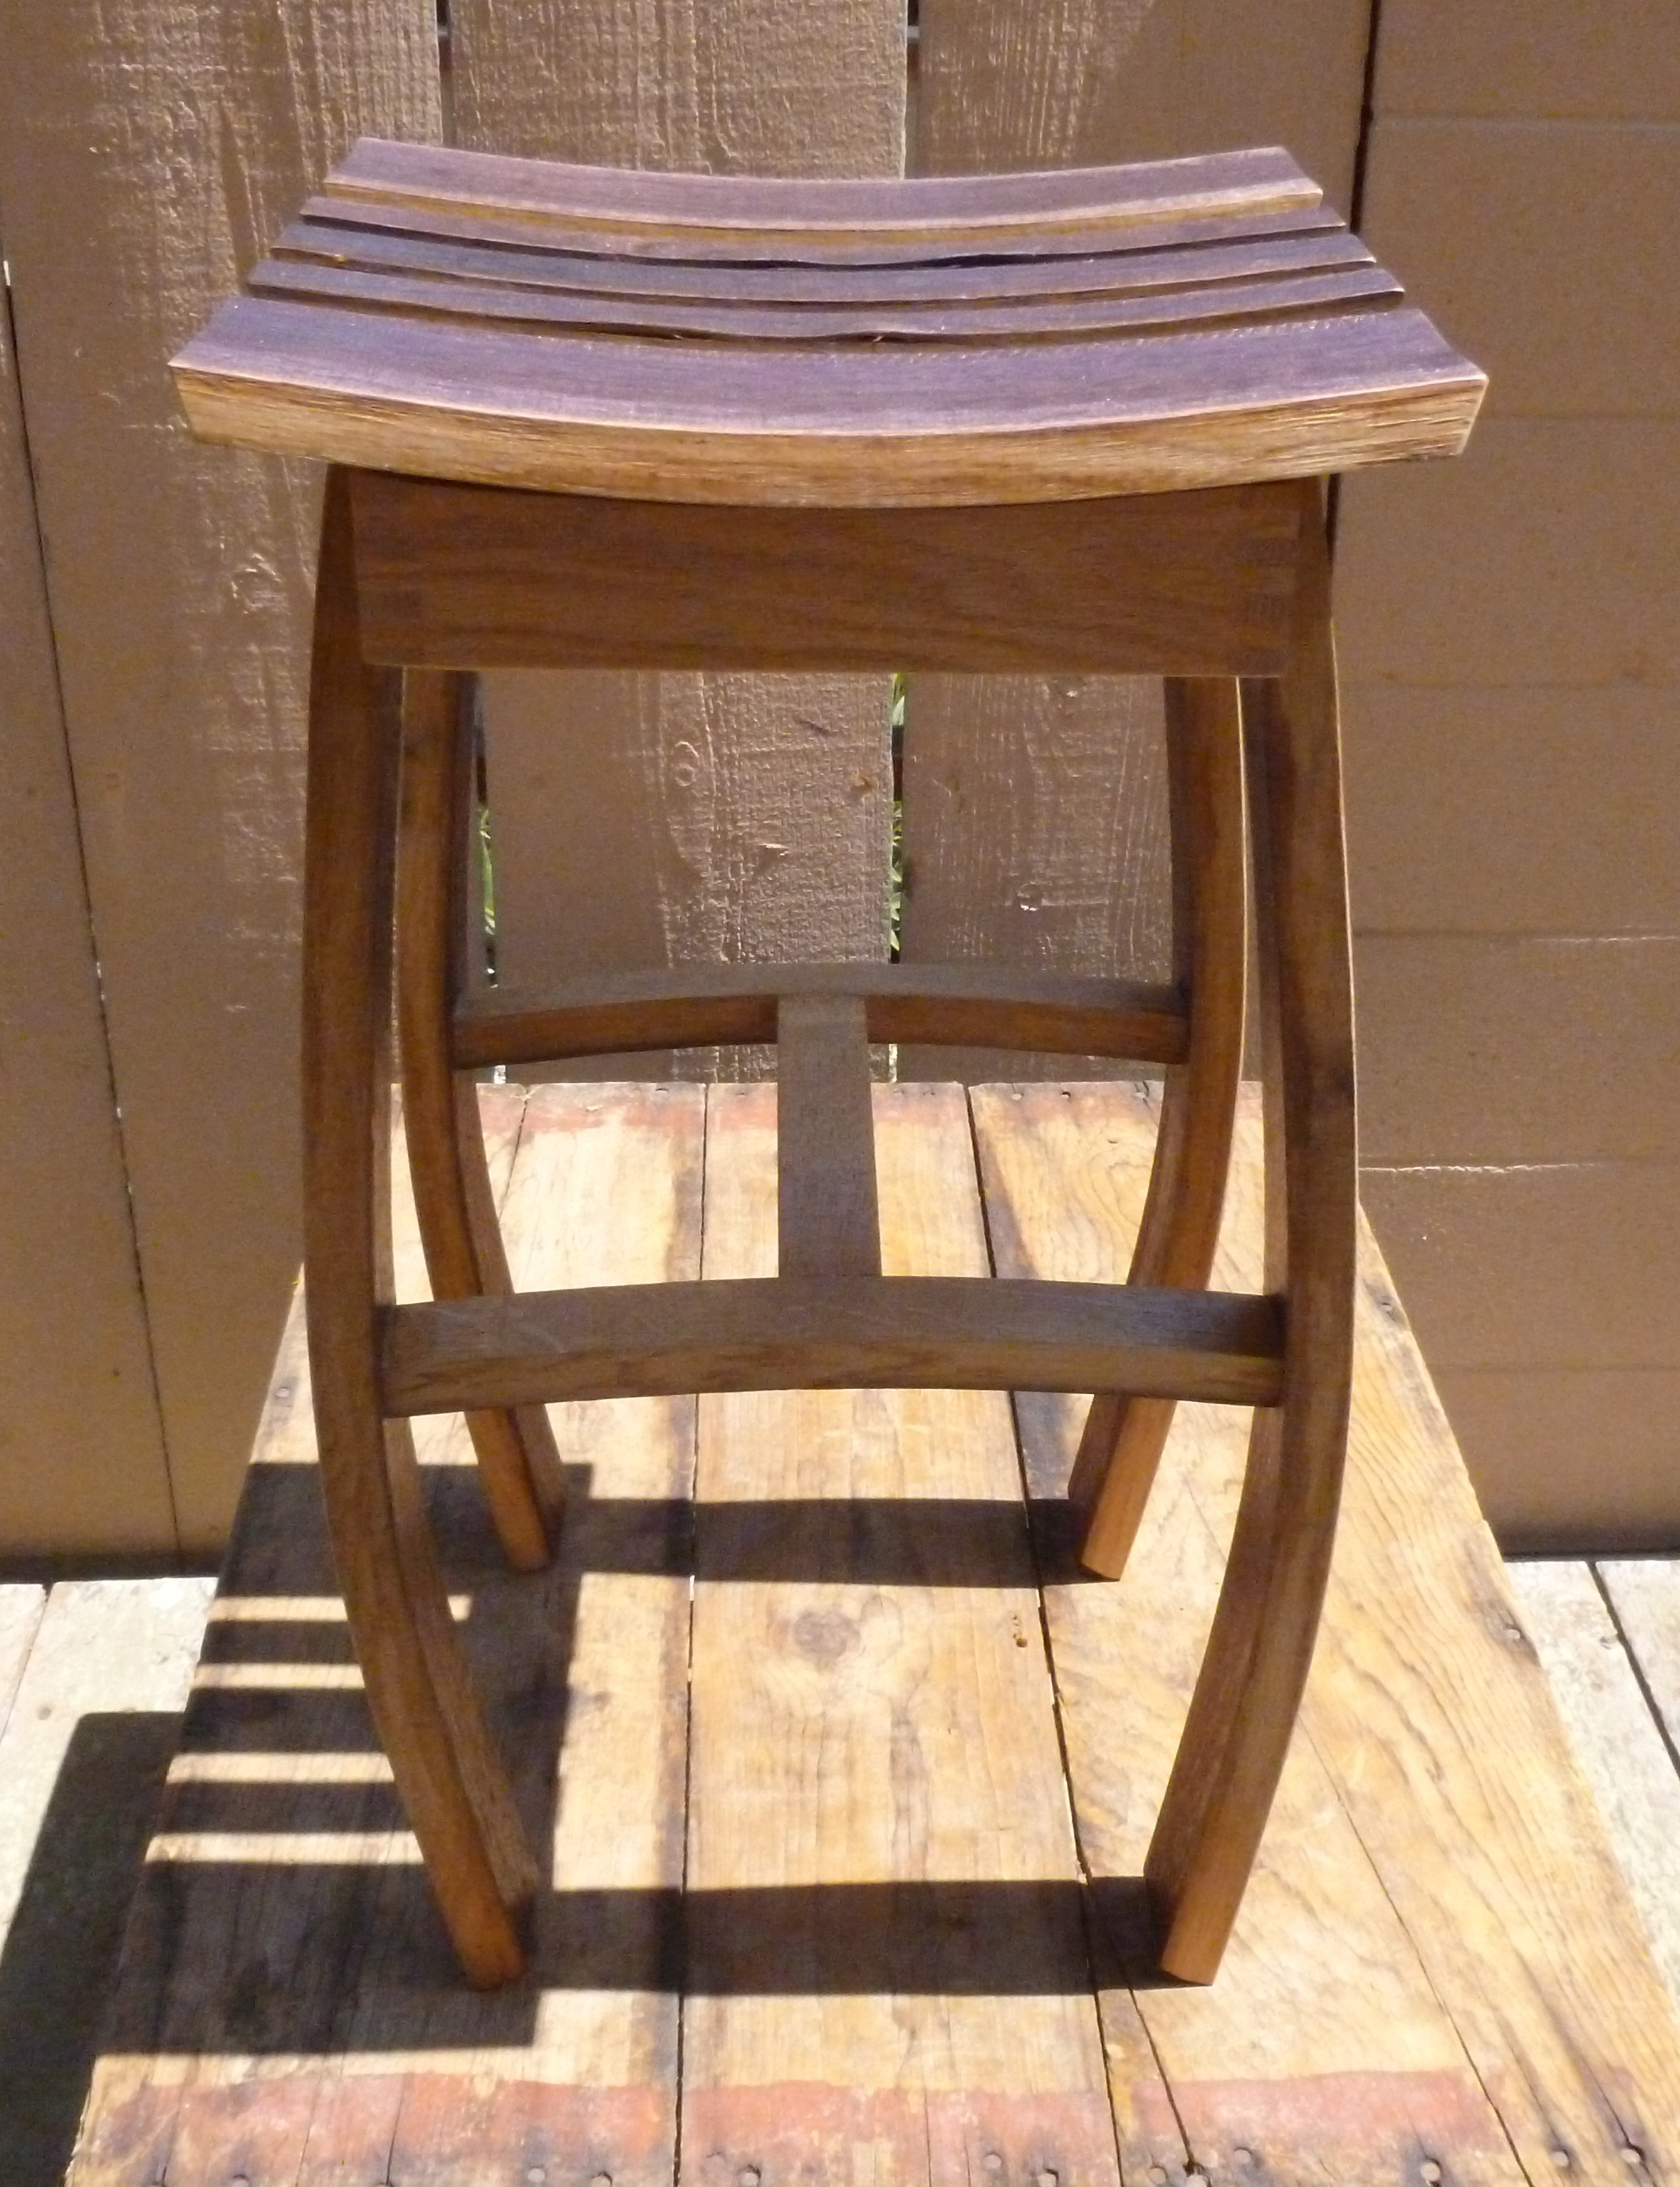 Wooden chair front view -  Here Is A Straight On Front View Of The Stool